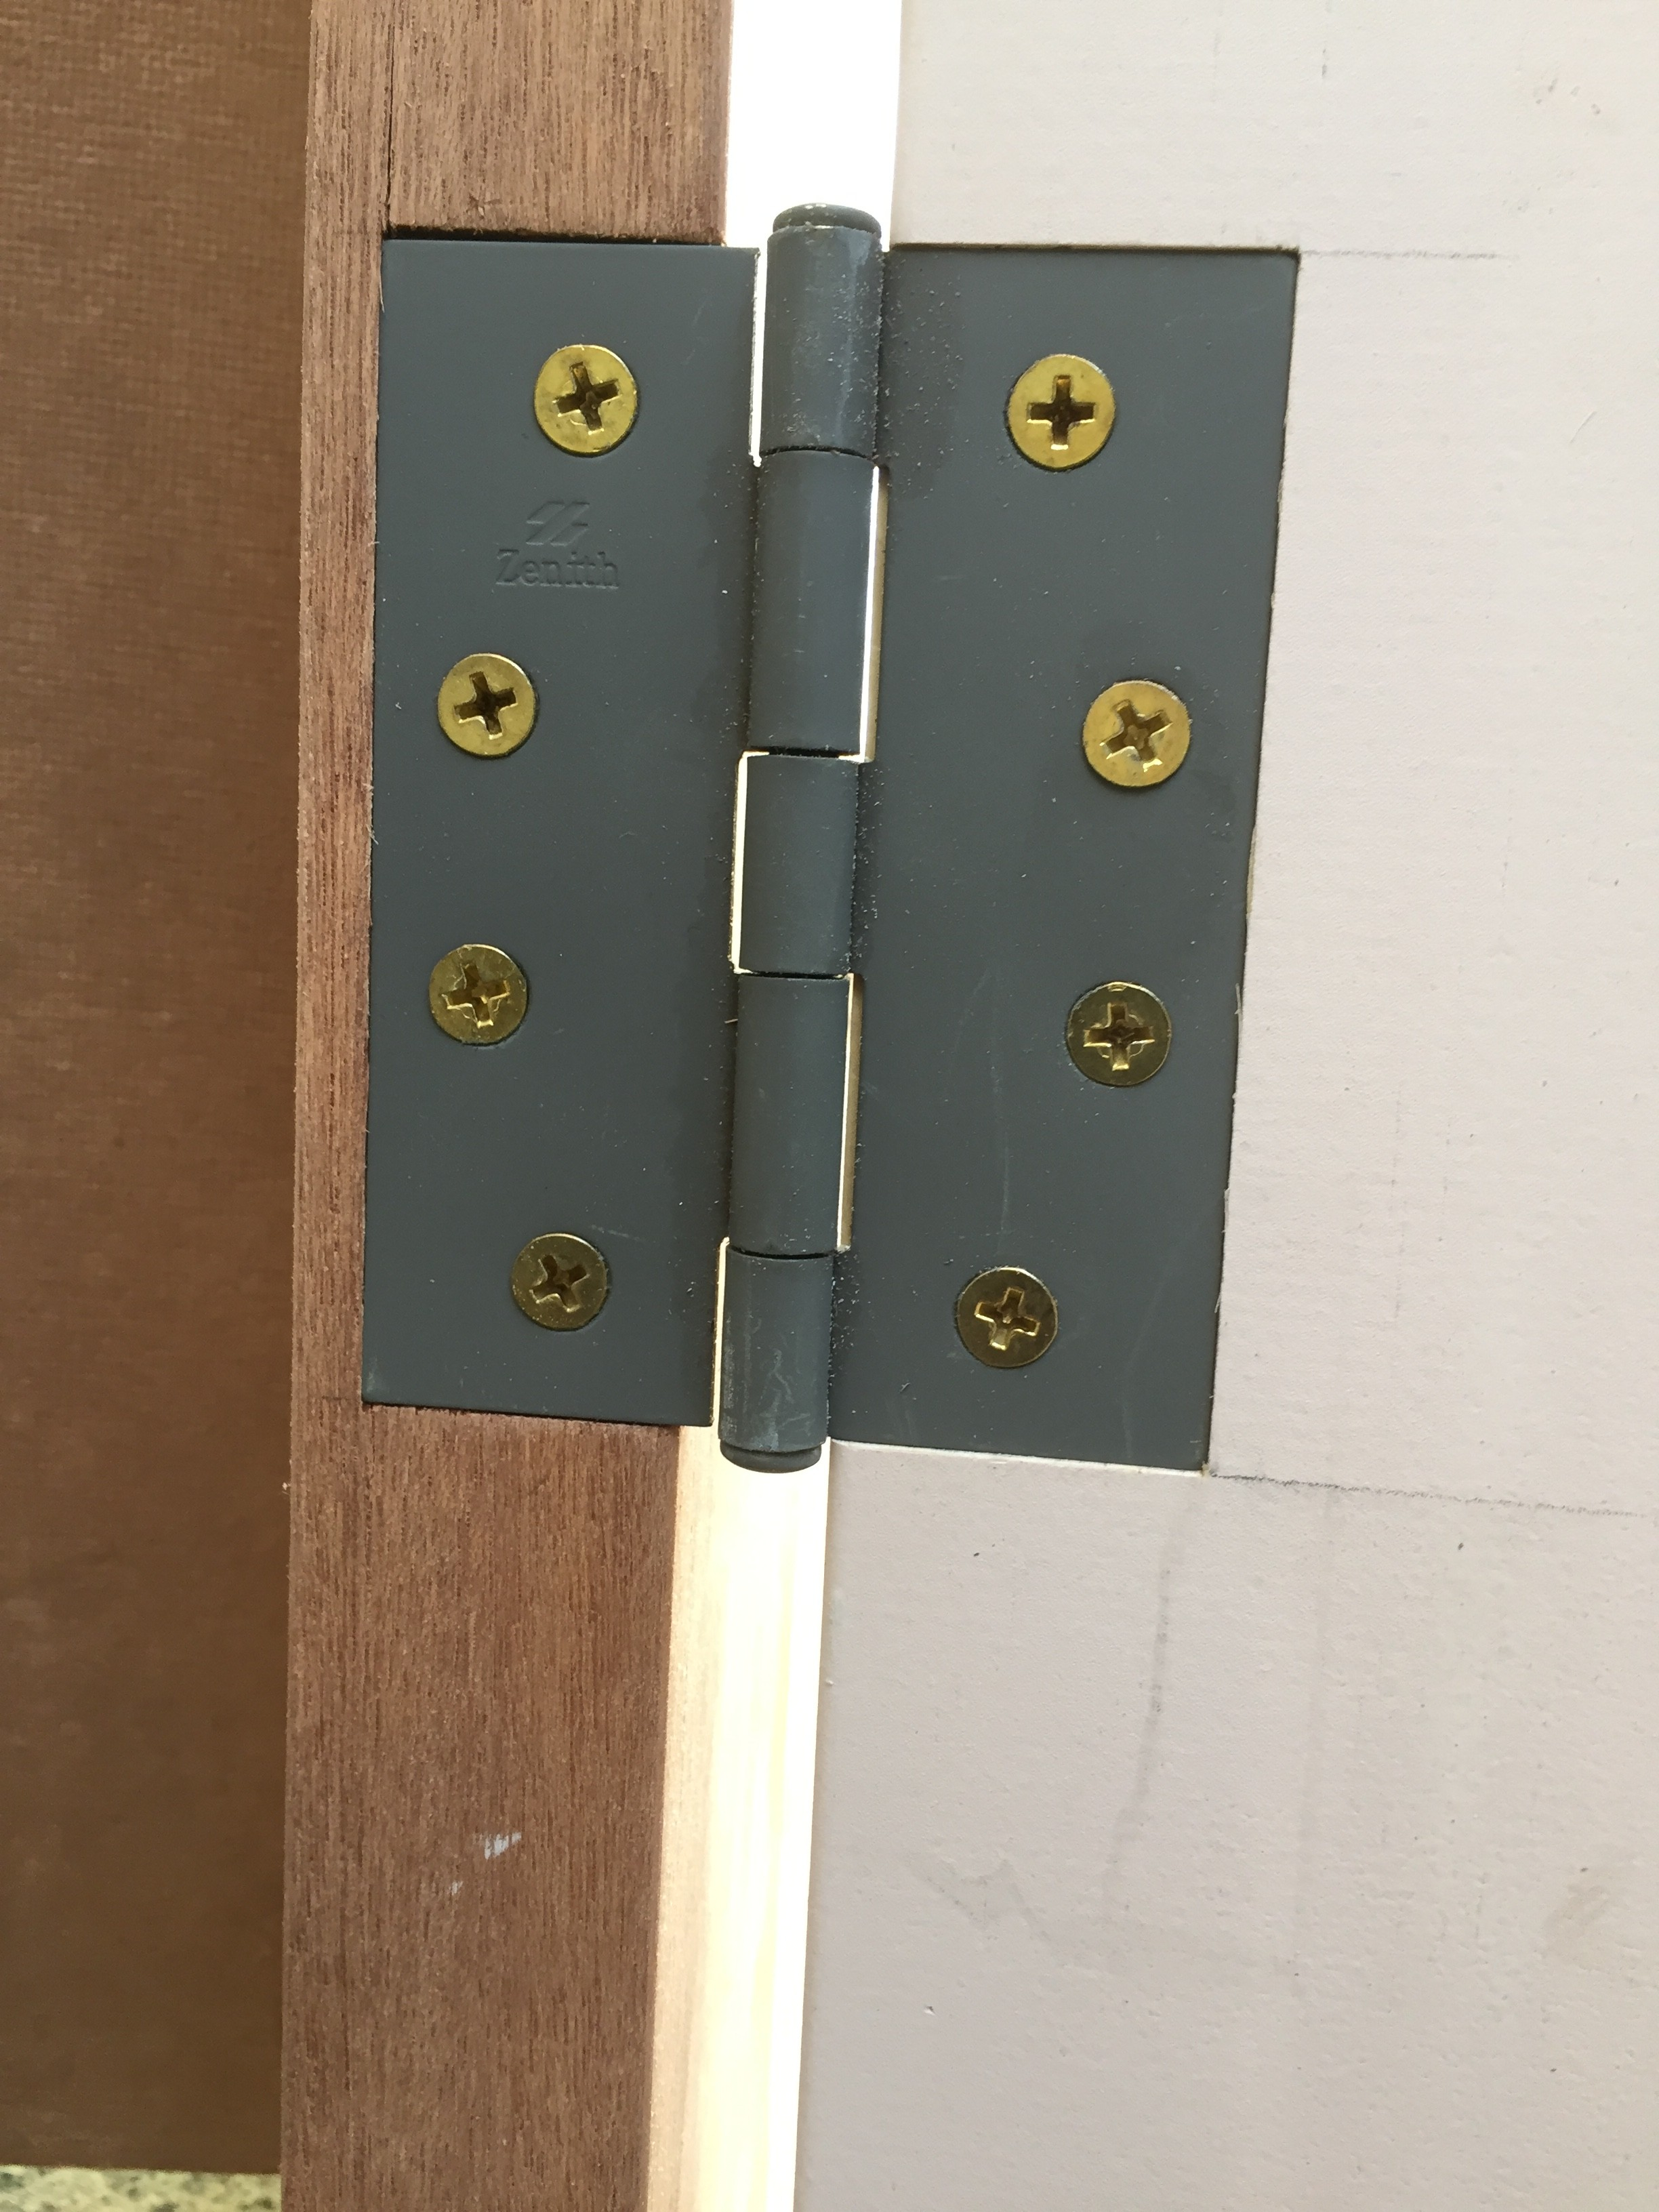 1f - Hinge Check Out